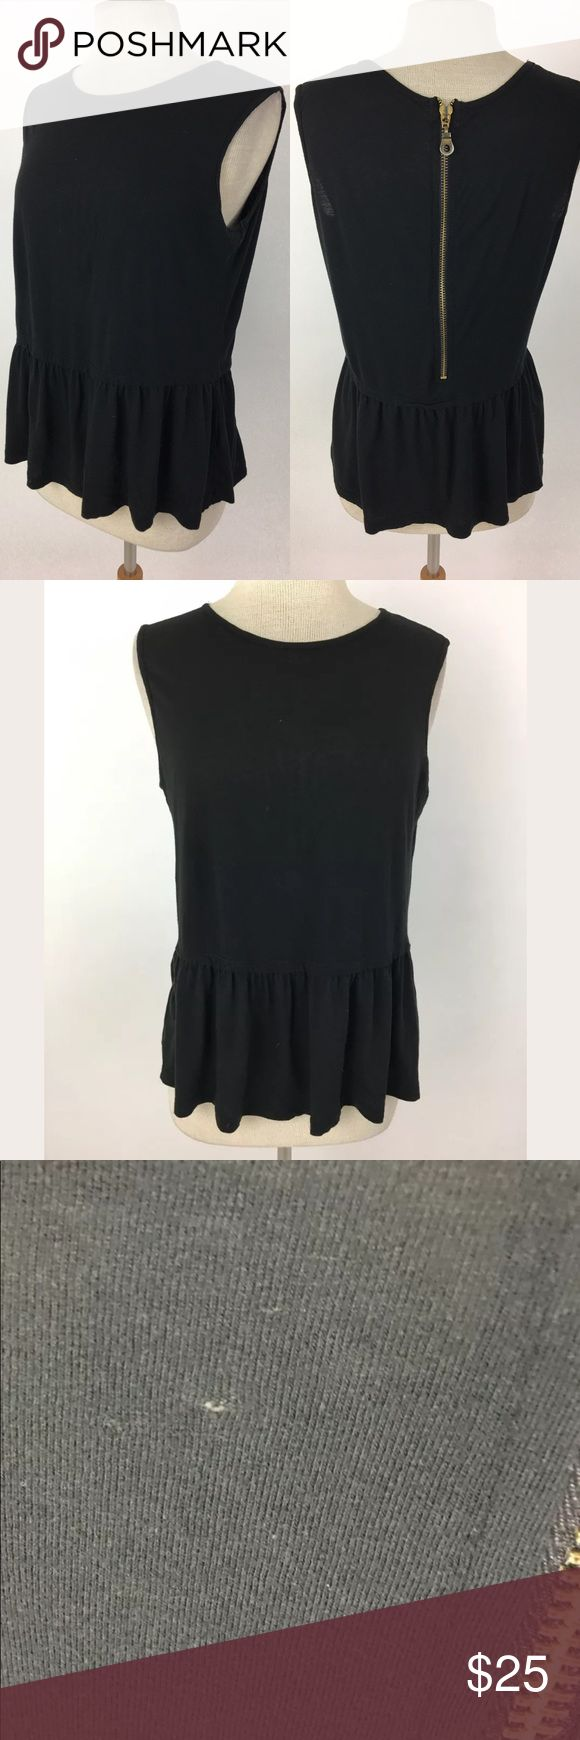 Zara top This has a few very tiny pinholes scattered around. They're minuscule and not obvious at all.  Bust: 38 Shoulder to hem: 23.5  87% cotton, 13% polyester.  Item: 900 Zara Tops Tank Tops